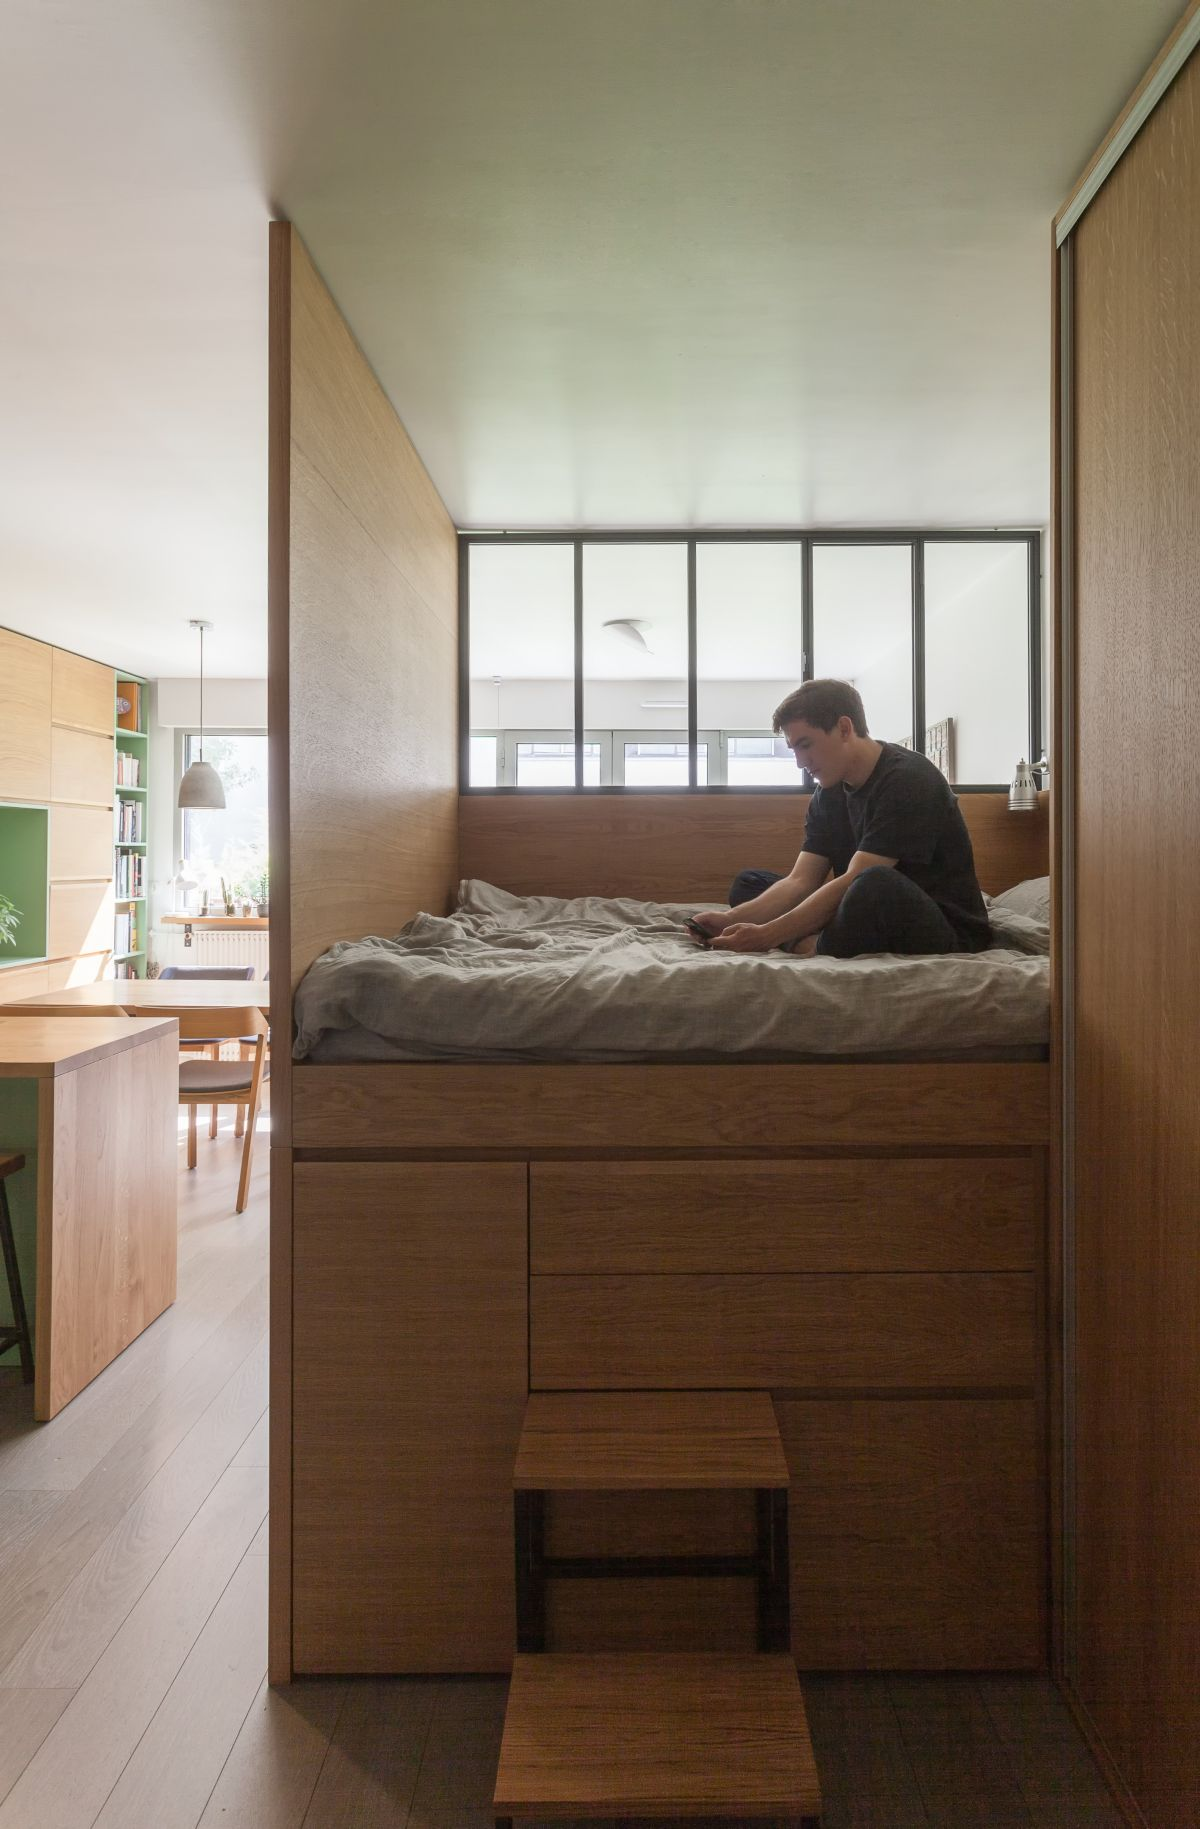 There's a small loft sleeping space with plenty of storage also